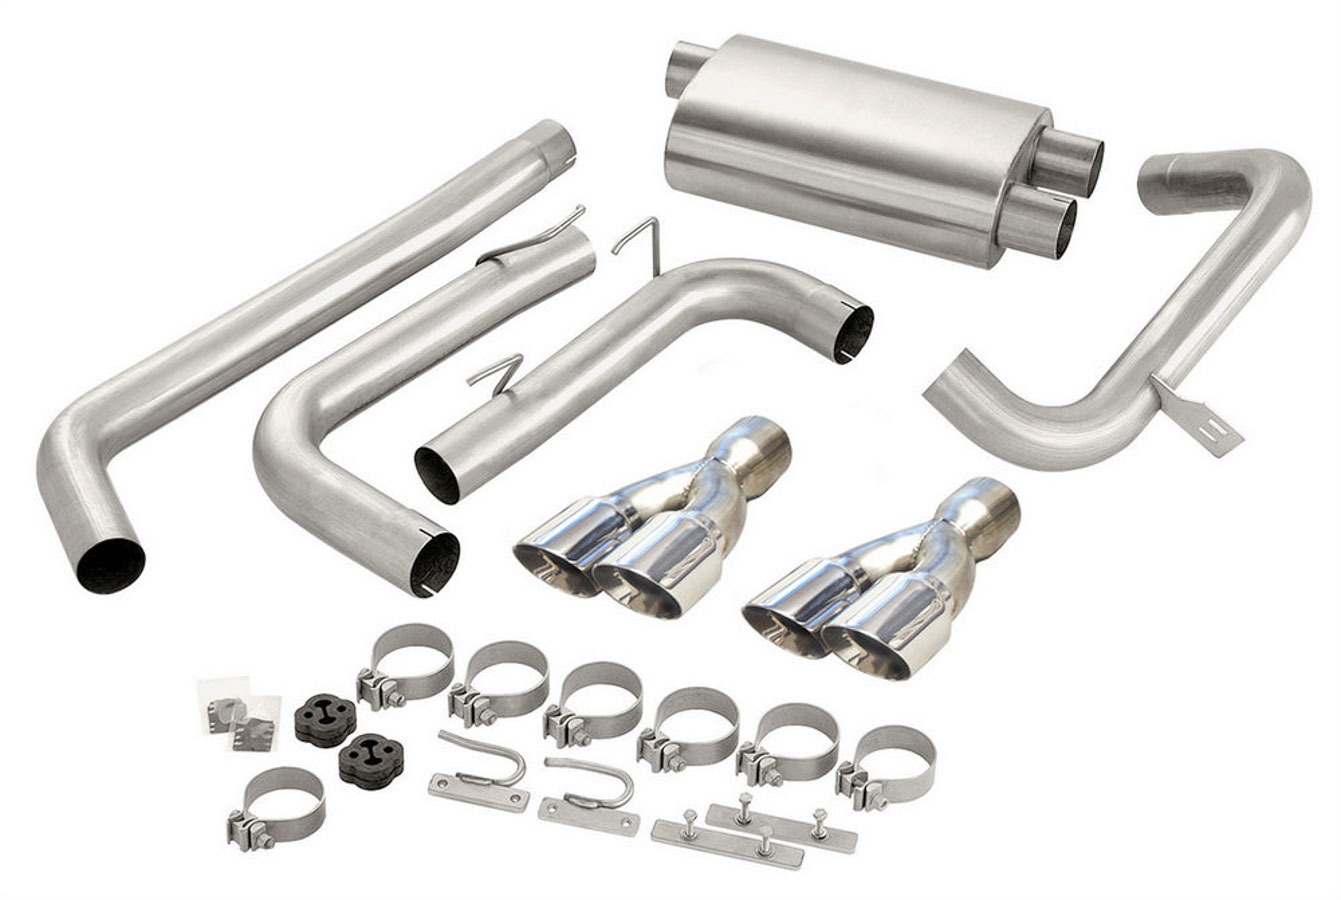 98-02 Camaro 5.7L Cat Back Exhaust System